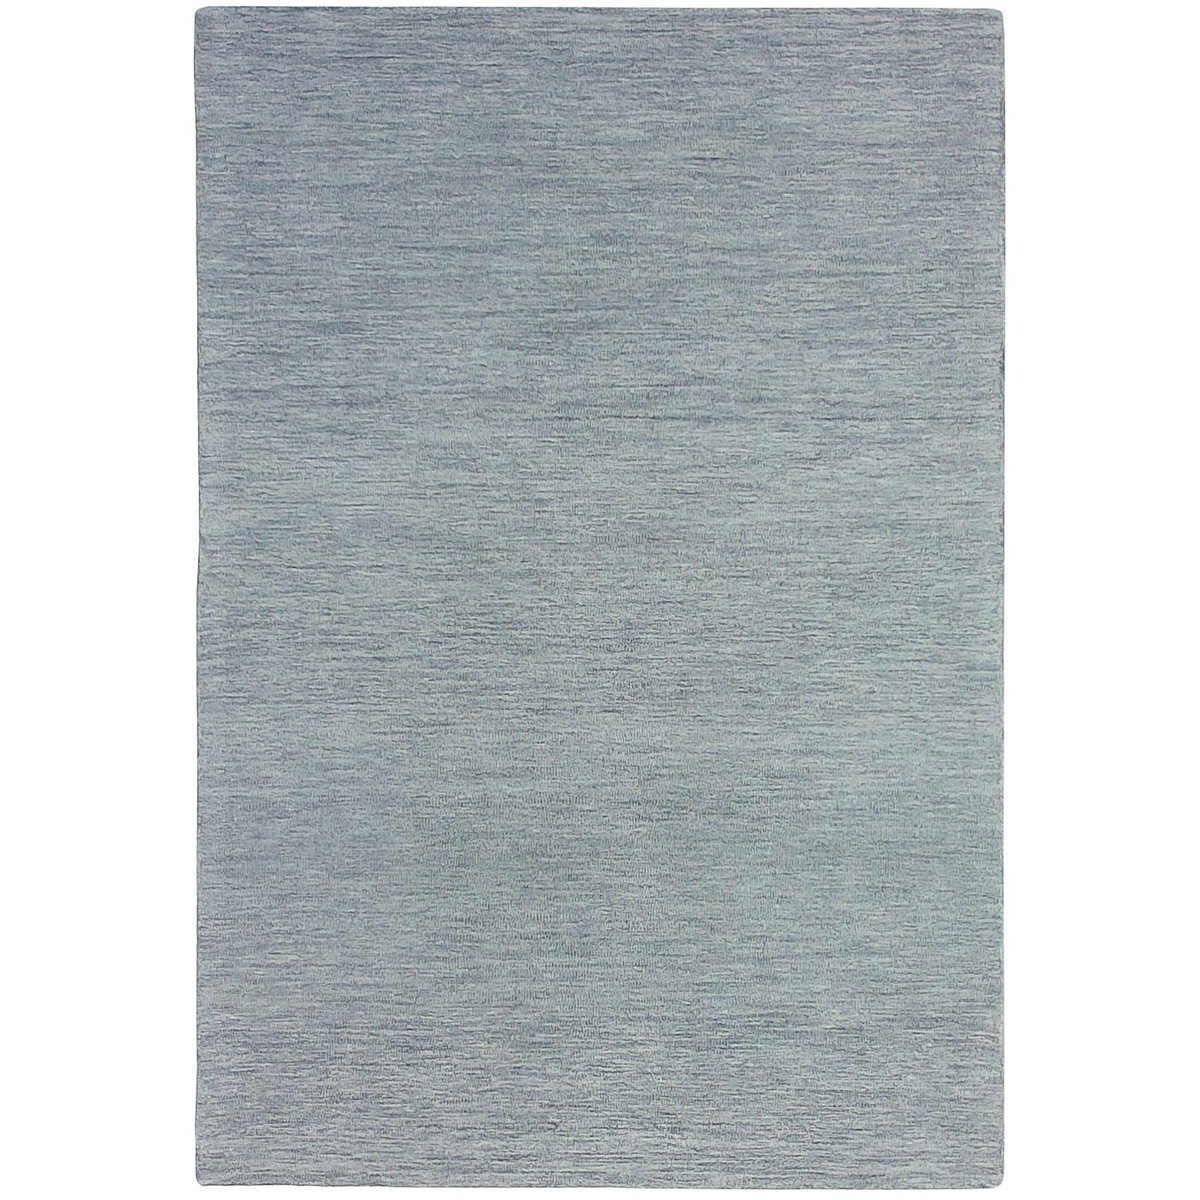 Marled Hand Tufted Wool Rug, 250x300cm, Grey